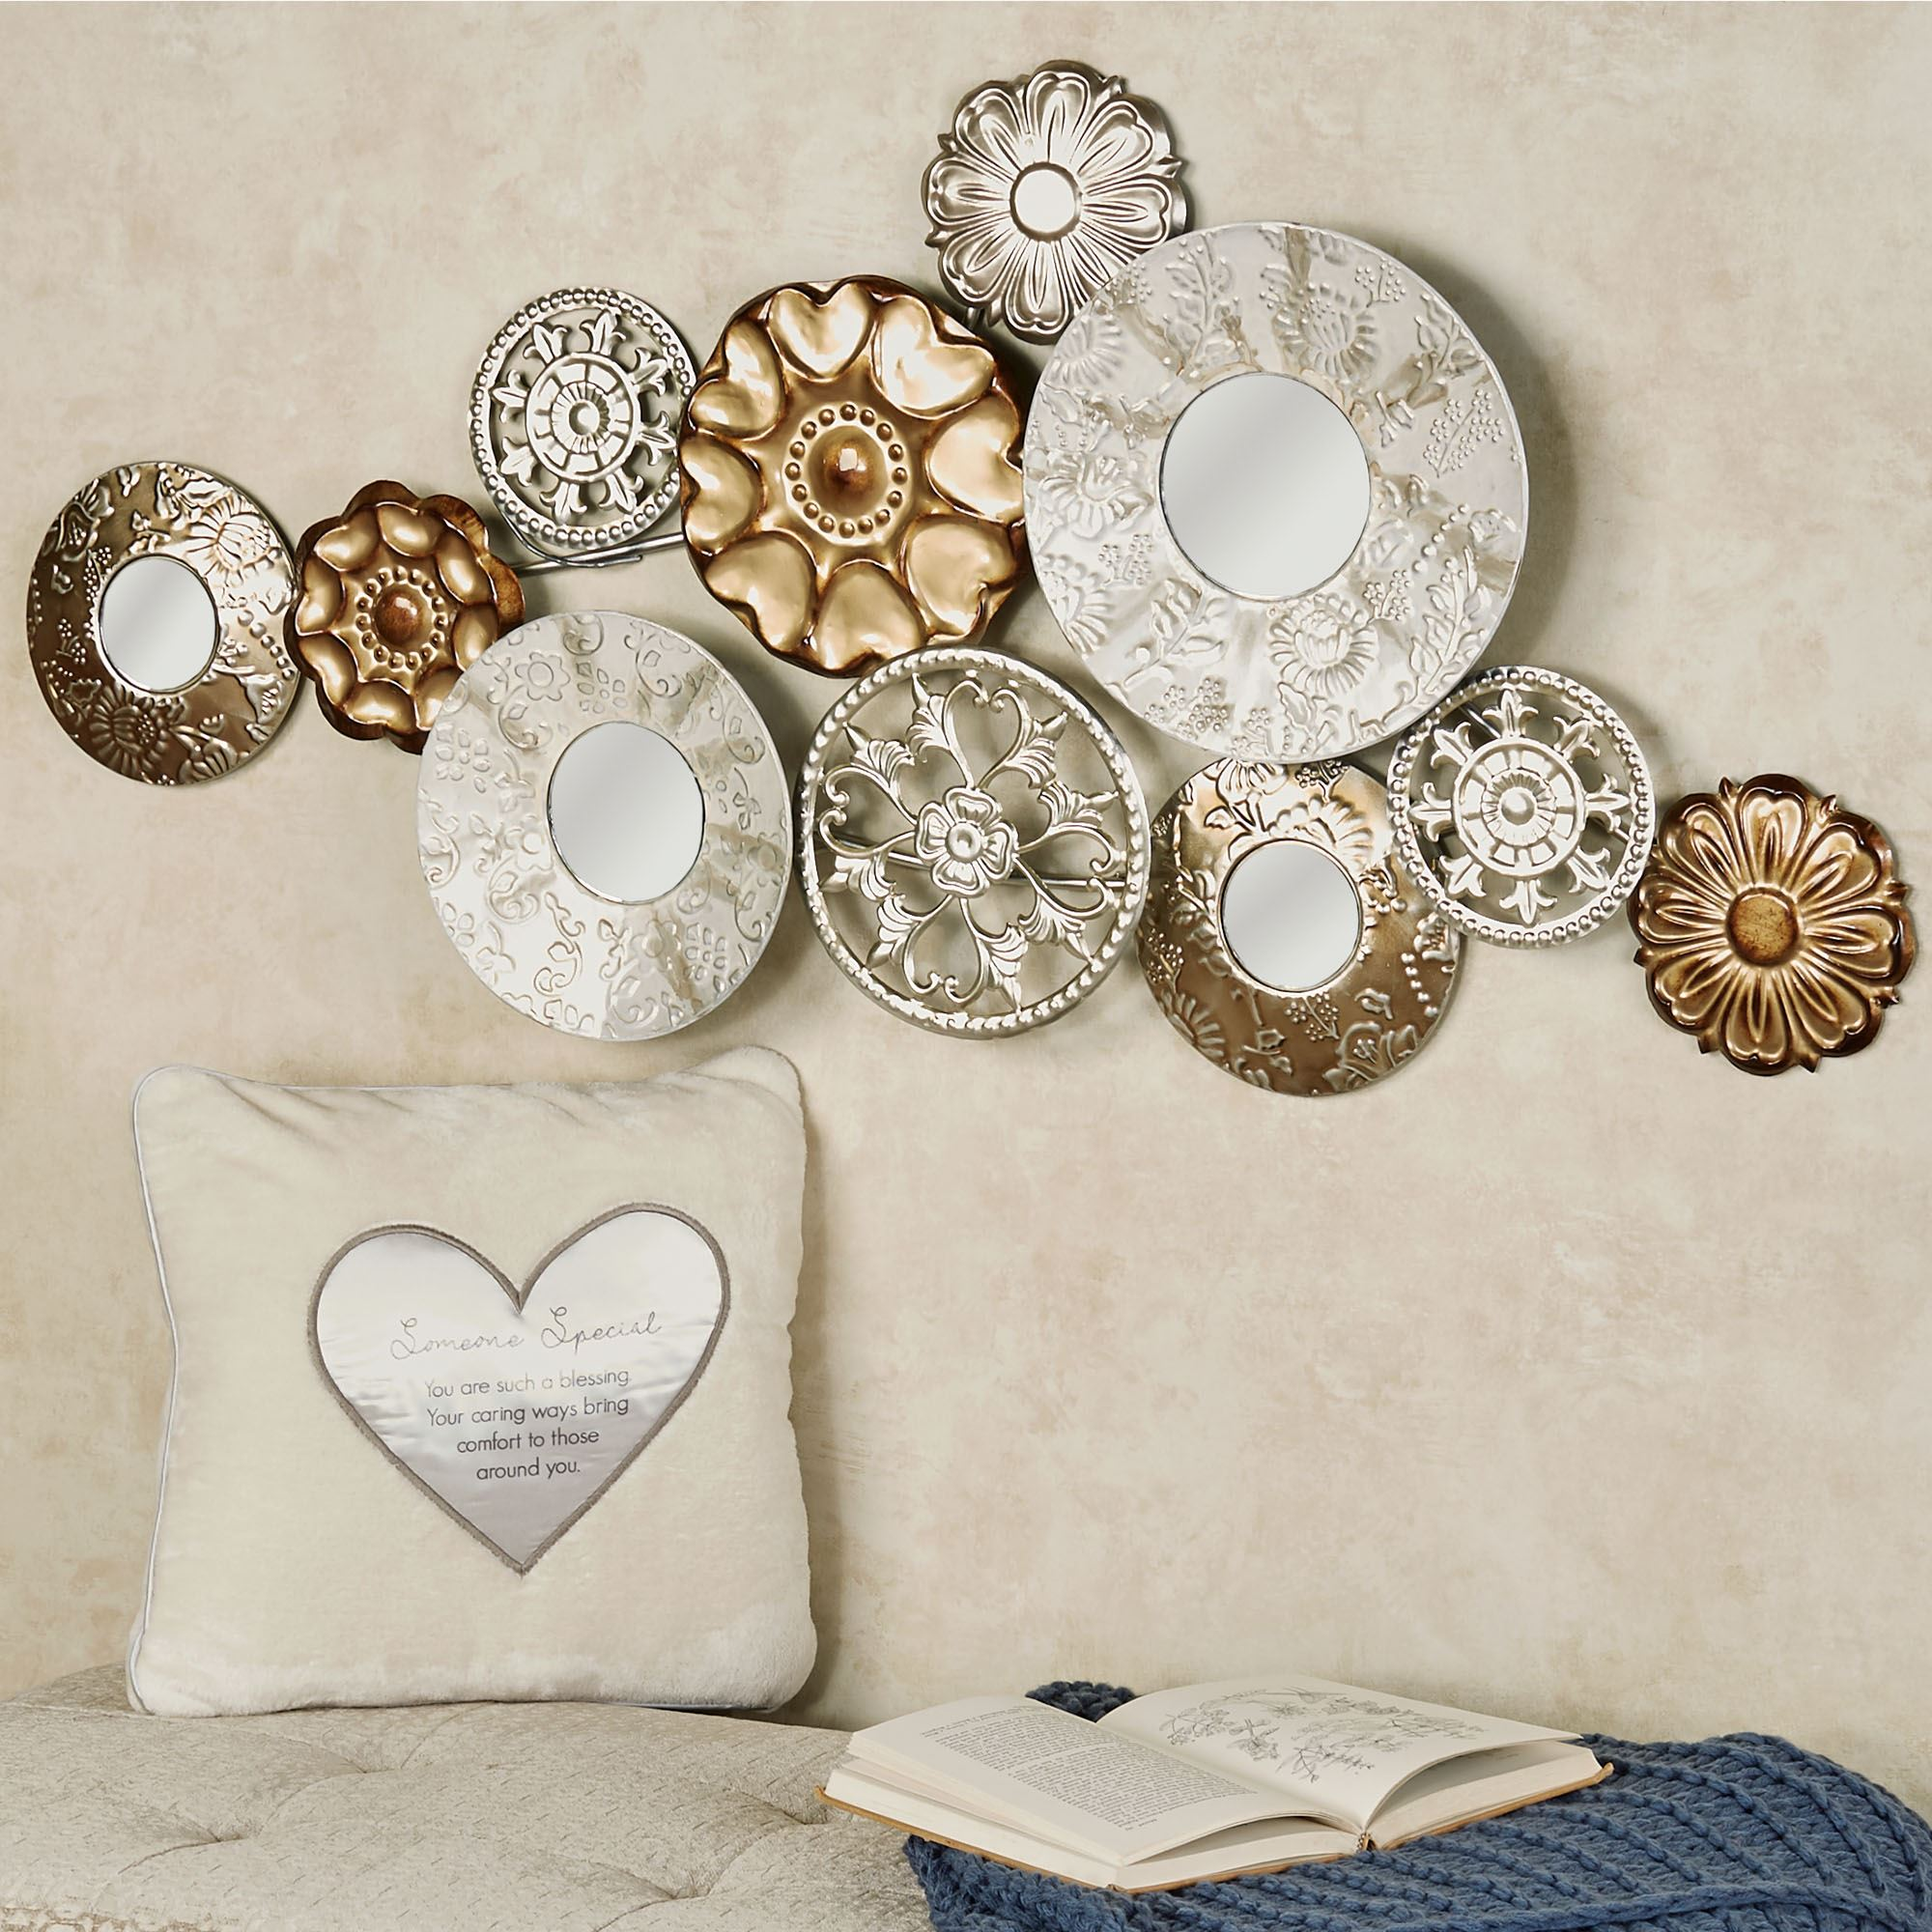 Mixed Metals Home Decor Multi Metallic Home Accents | Touch of Class